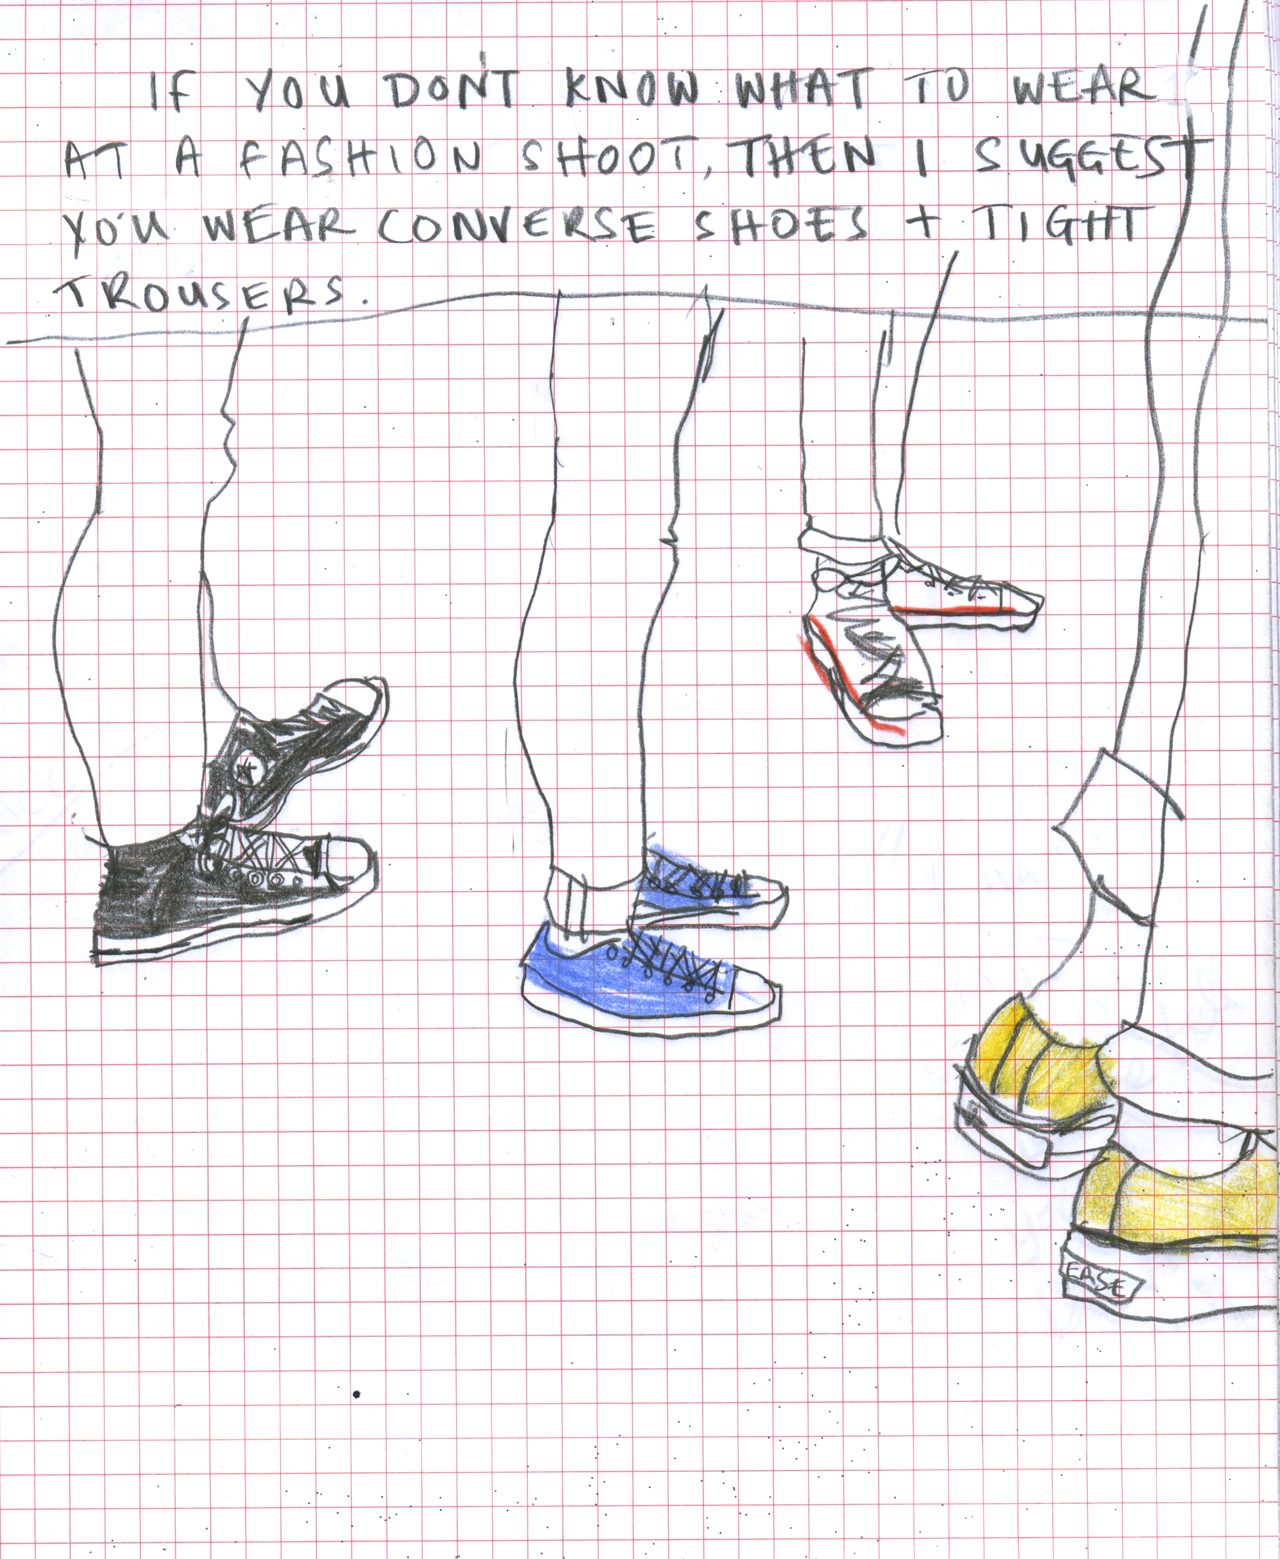 8 out of 10 people at a fashion shoot prefer to wear Converse